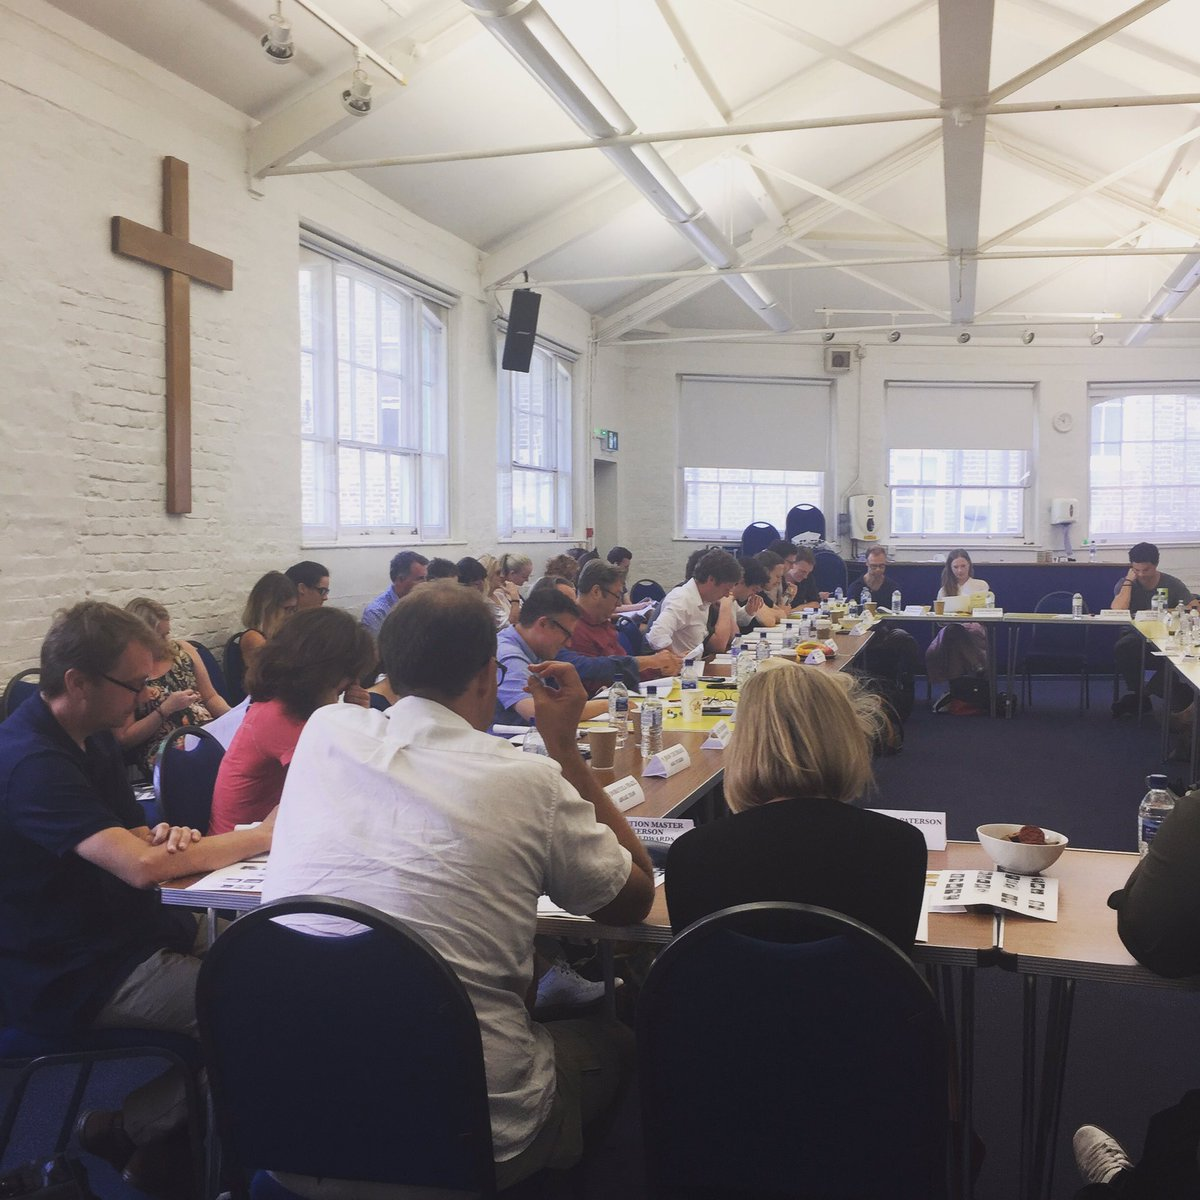 #117of196 Readthrough Film 3. Very nice AC in the Lord&#39;s house. #endeavour #productiondesign<br>http://pic.twitter.com/Clmr7JwQ9K